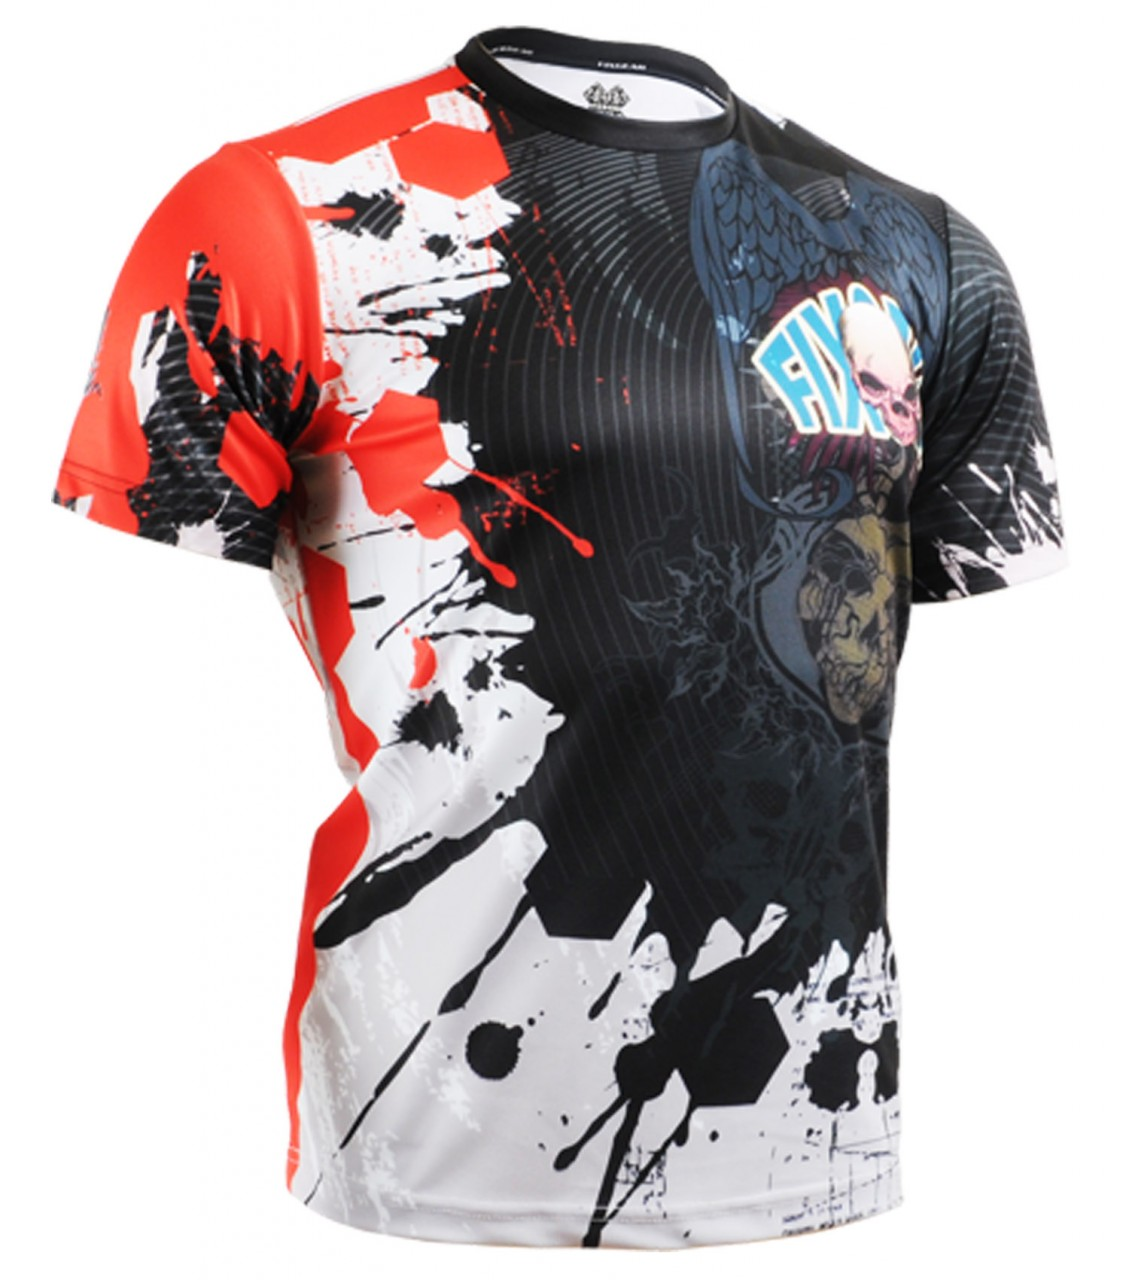 Design t shirt badminton - Unique Skull Design Fixgear Round Black Tshirt Provide Best Condition Cool And Dry For All In Outdoor Activities